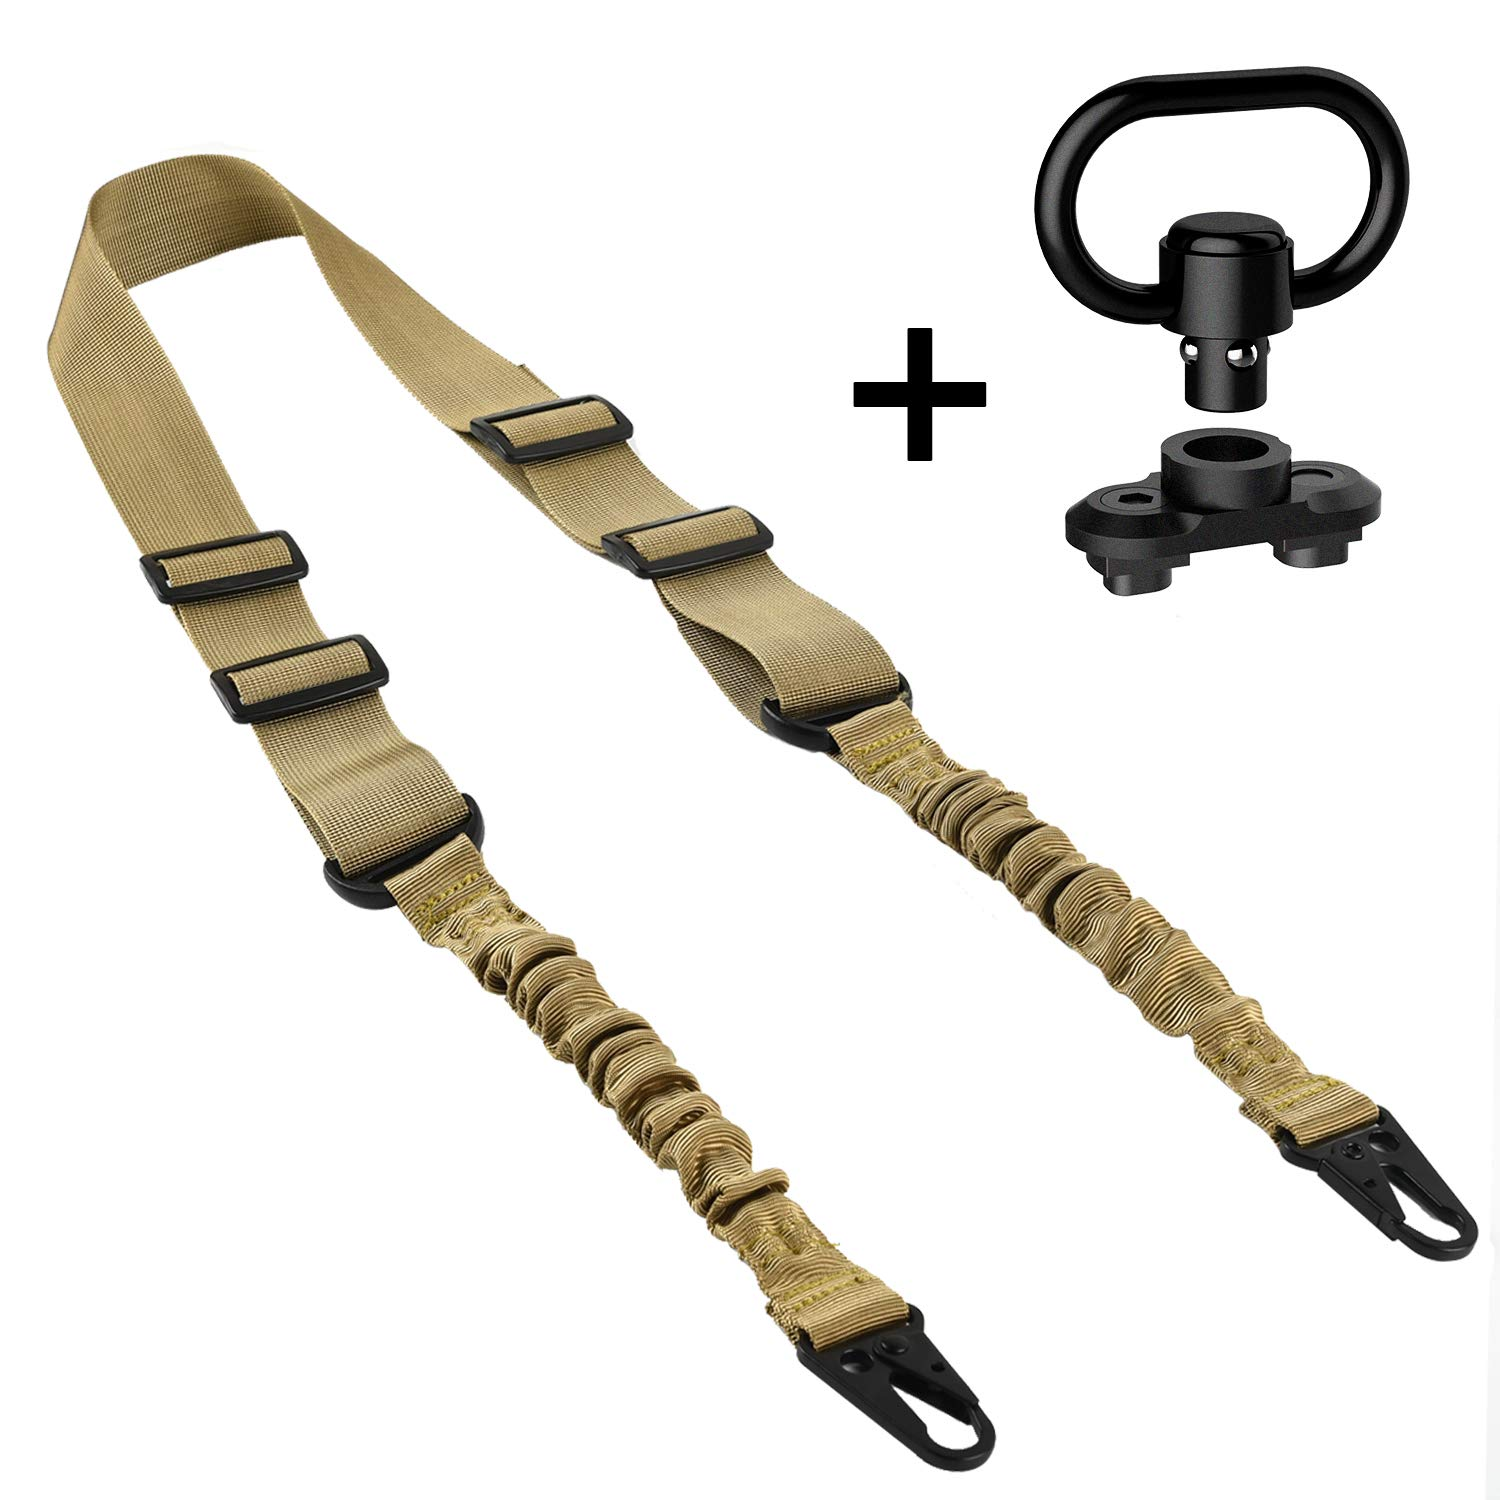 EZshoot 2 Point Sling and Qucik Release Sling Mount Sling Swivel Sand by EZshoot